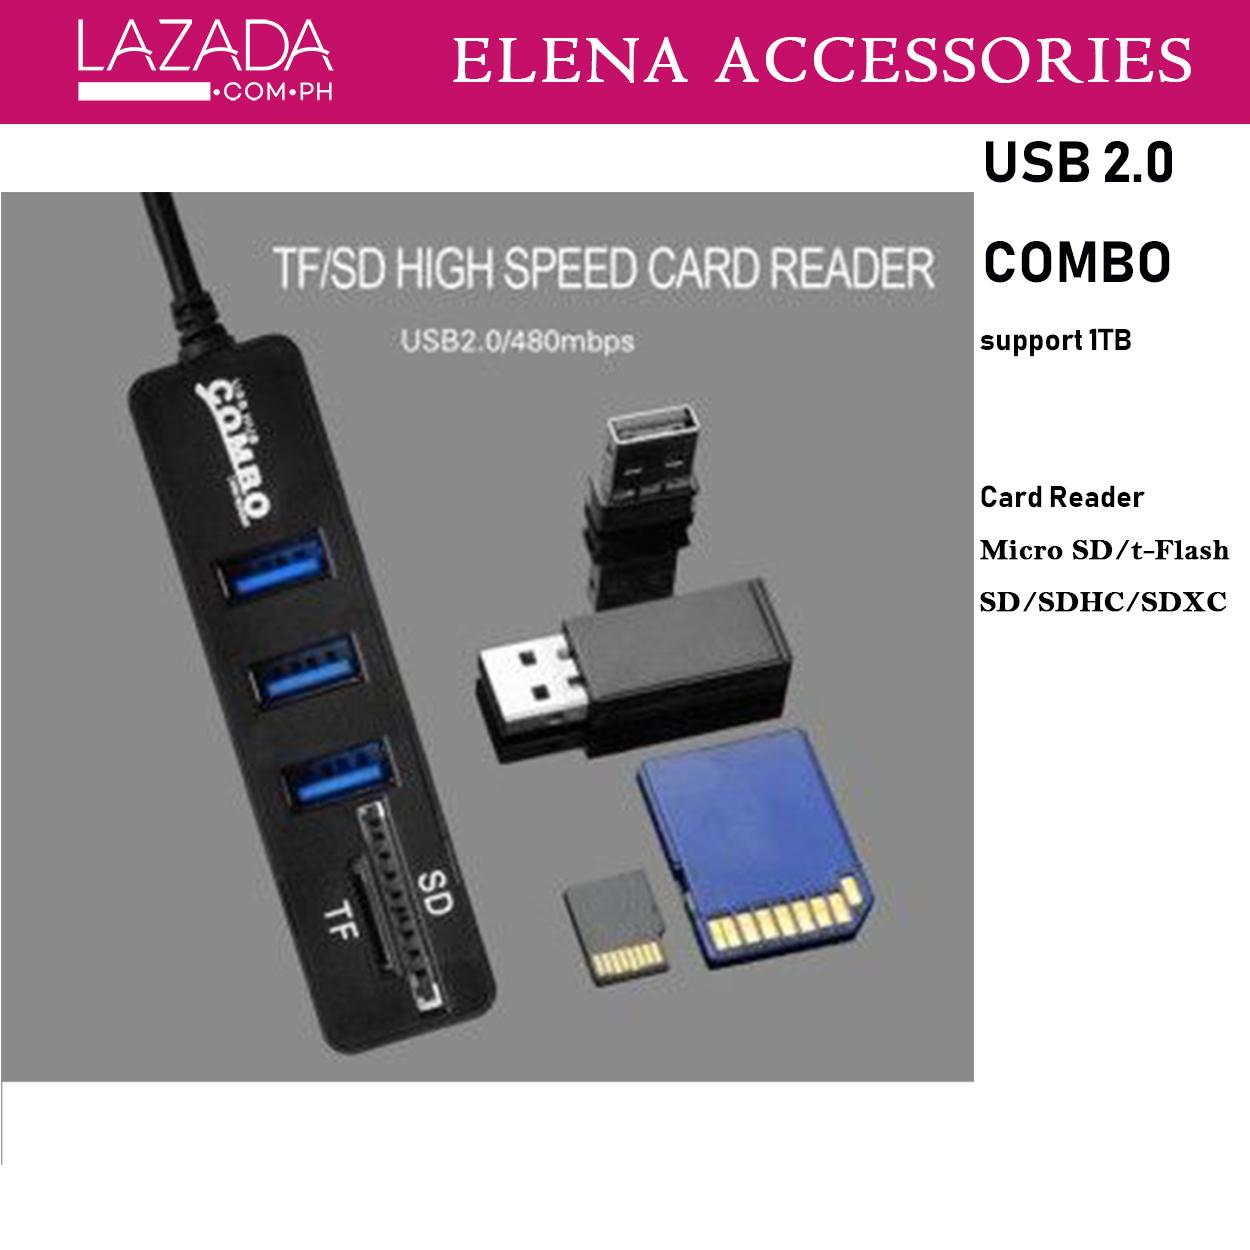 Usb Hub For Sale Port Prices Brands Specs In Power Booster Pc Laptop Elena Accessories Mini 3n1 20 Combo With Universal 2n1 Micro Tf Sd